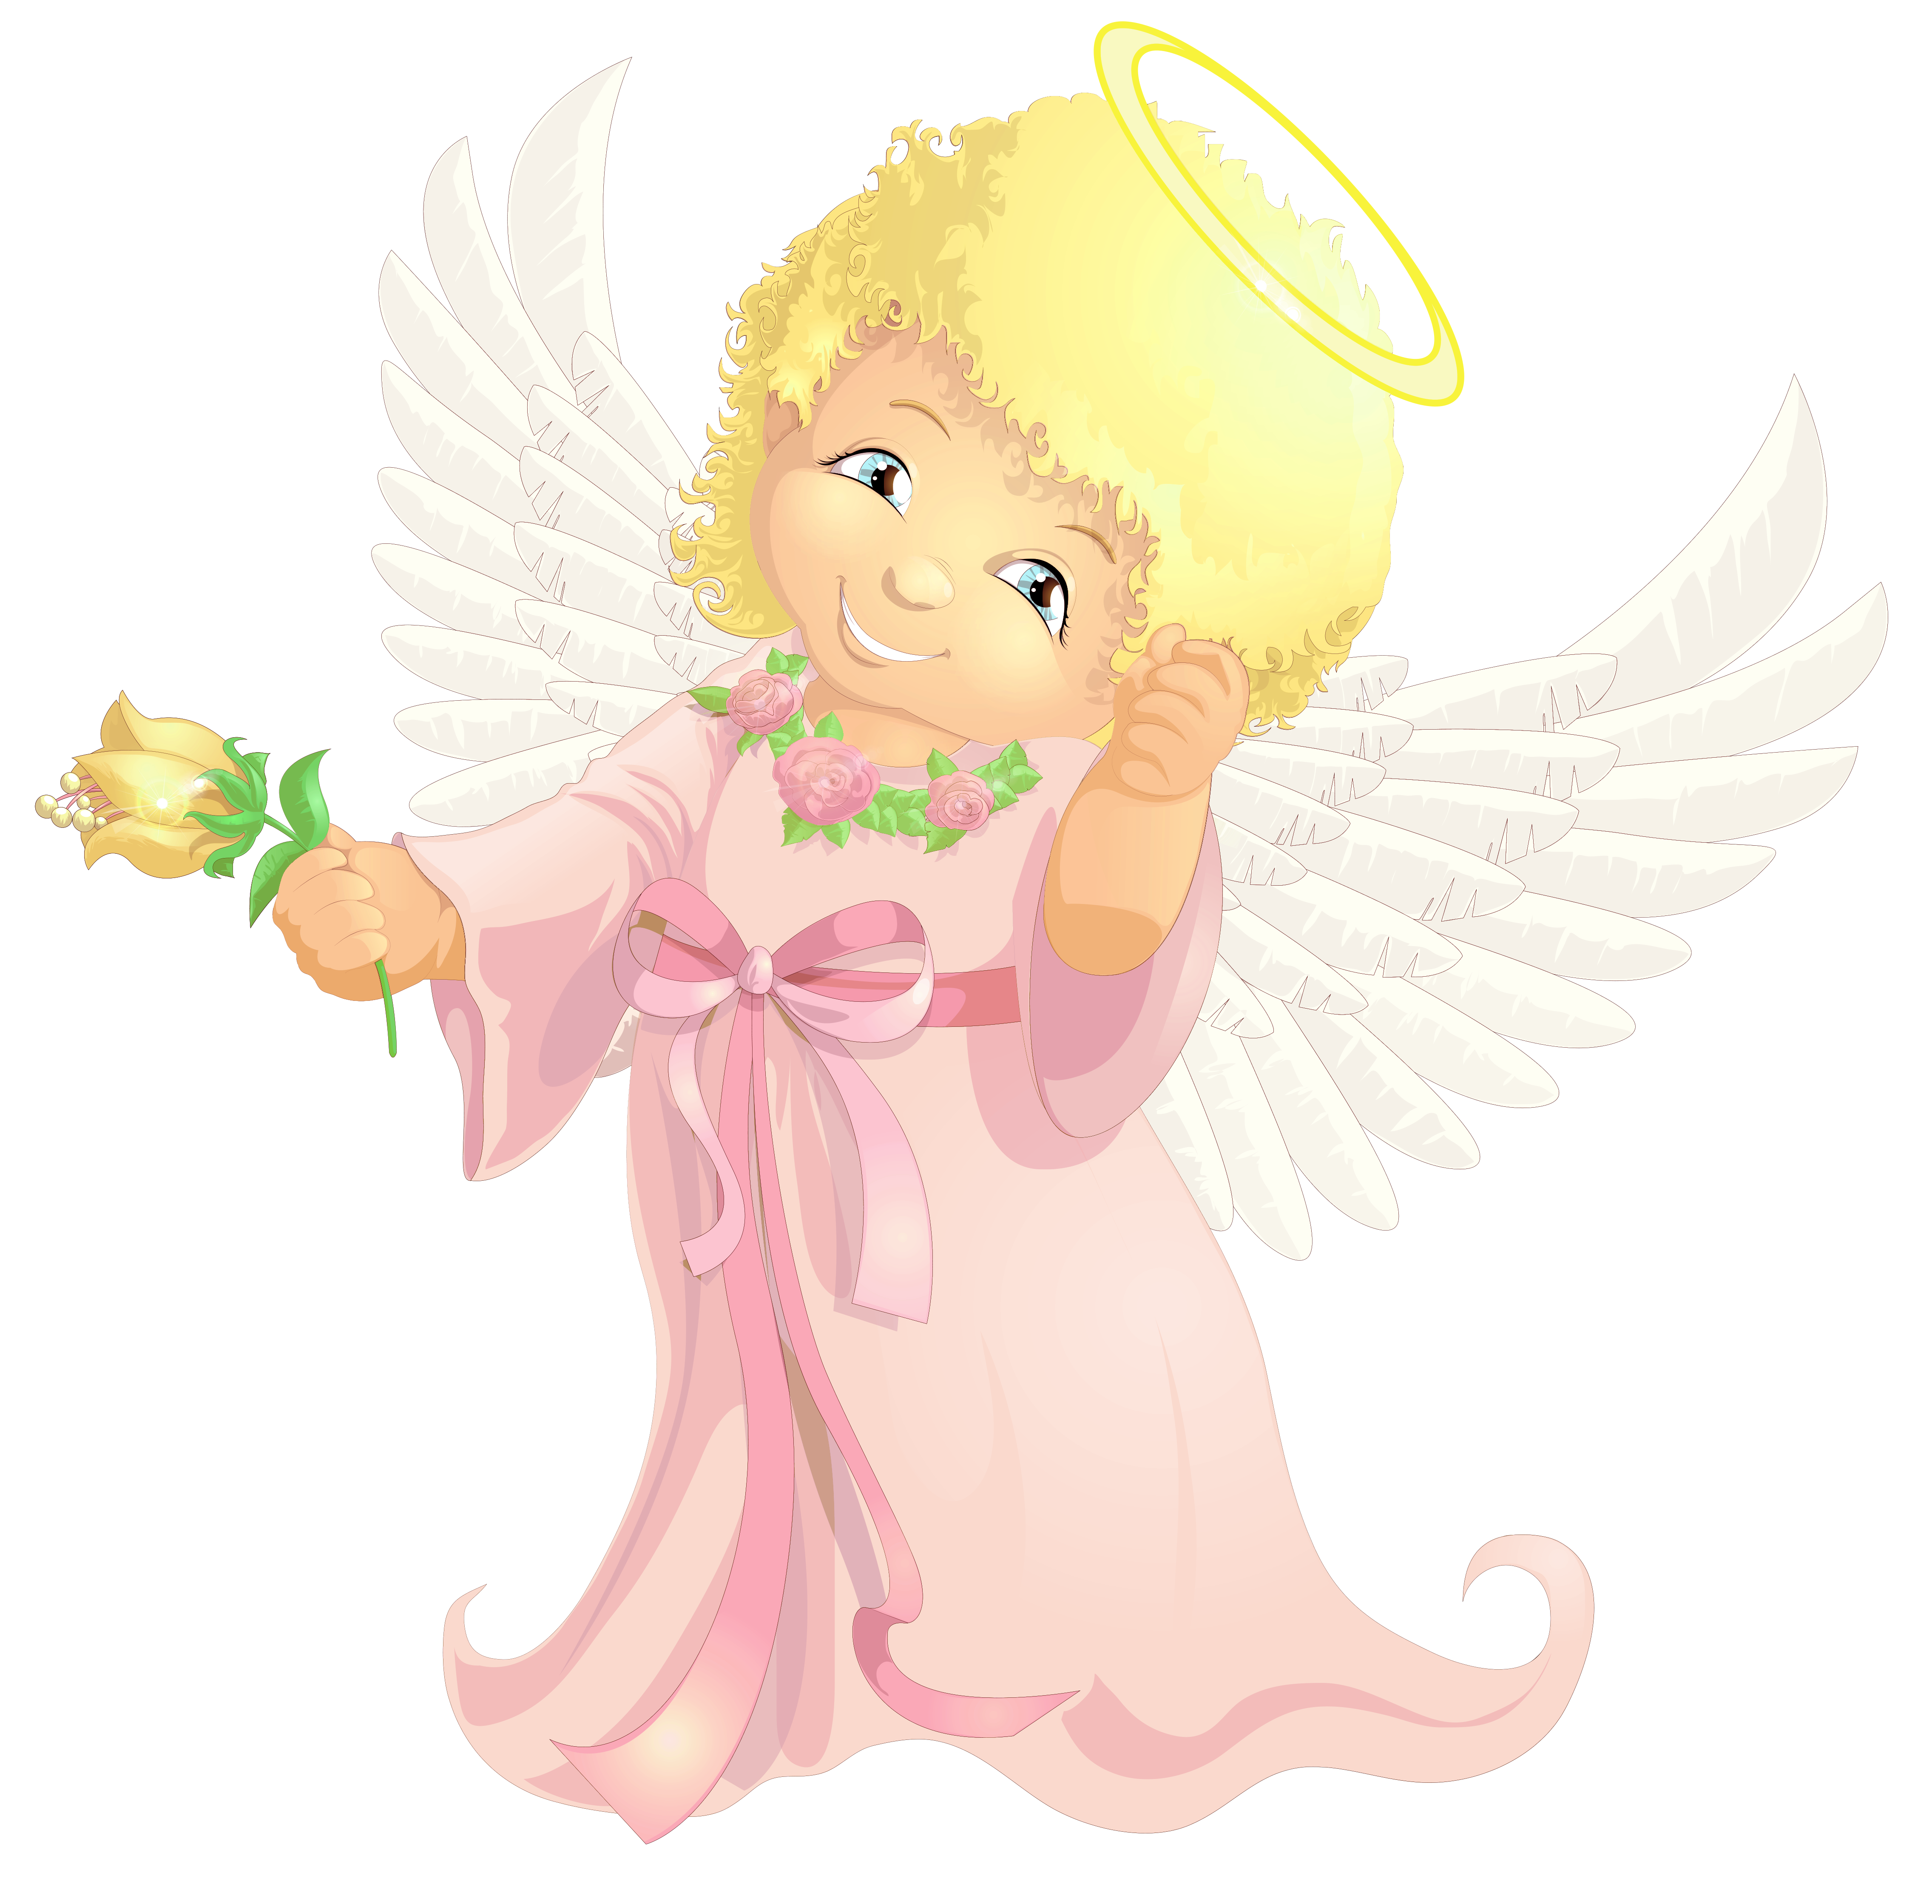 Angels clipart clear background, Angels clear background.